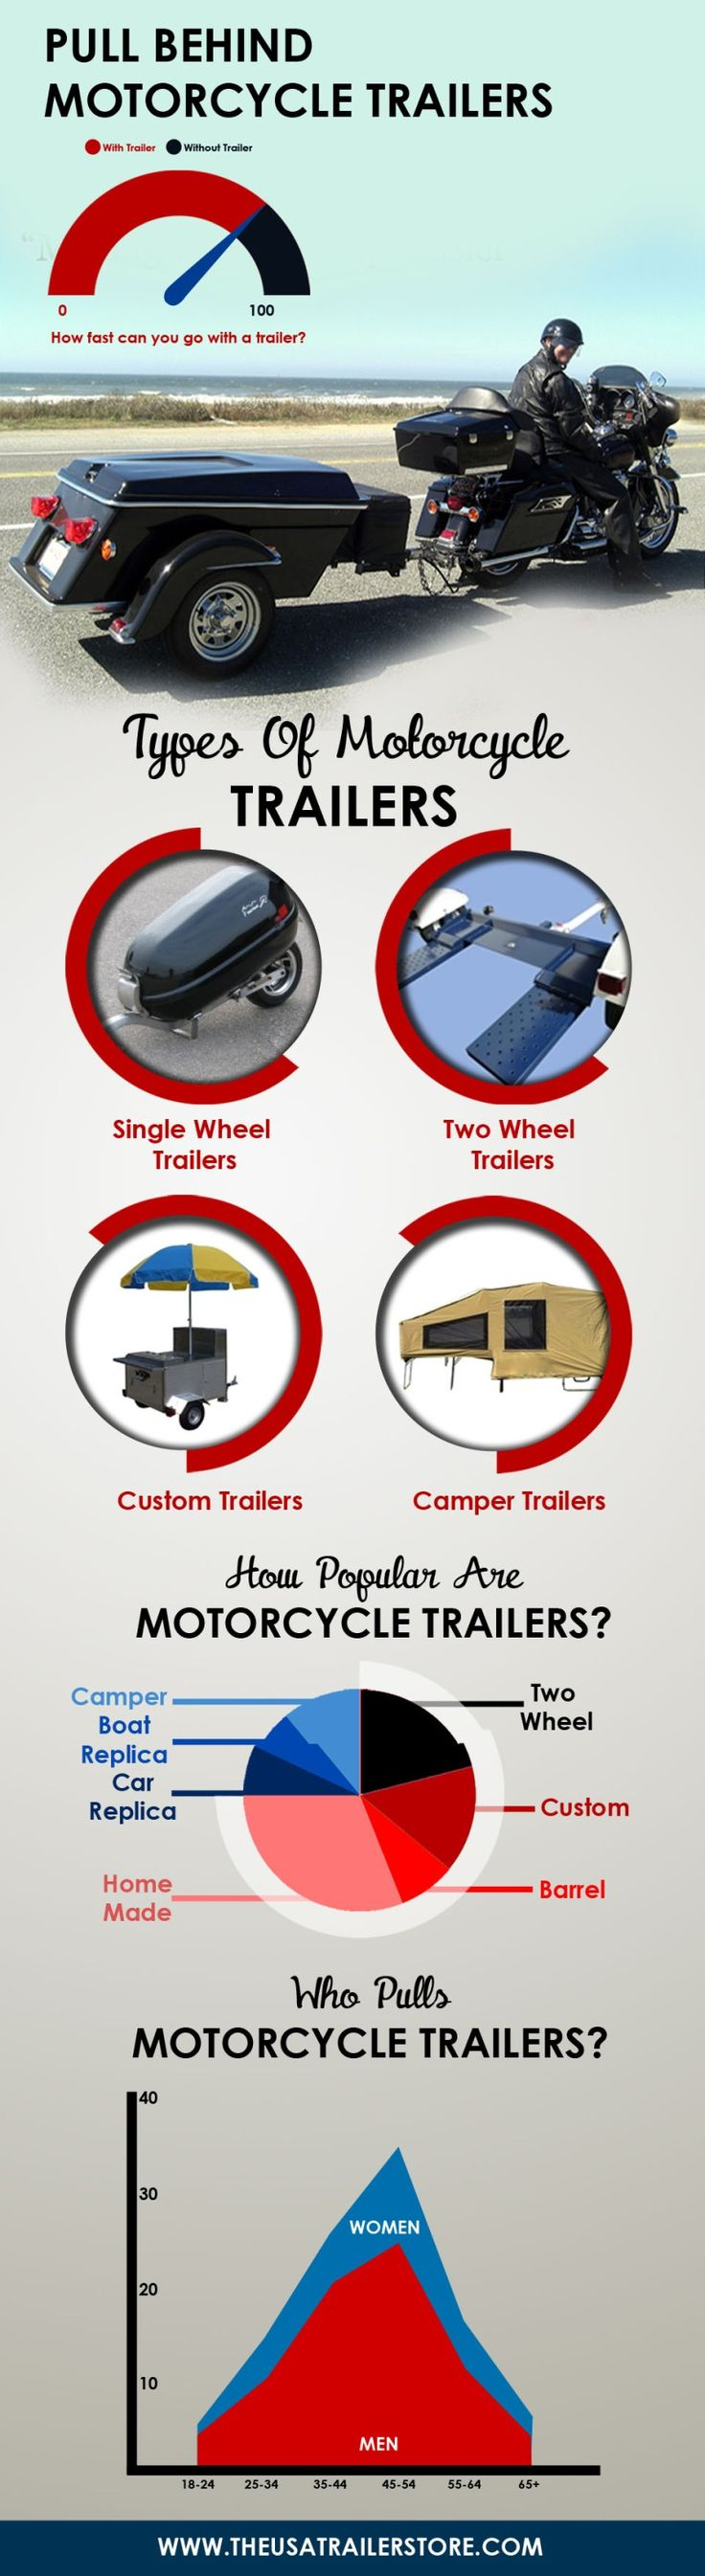 Pull behind motorcycle trailer types  infographic by theusatrailerstore.com